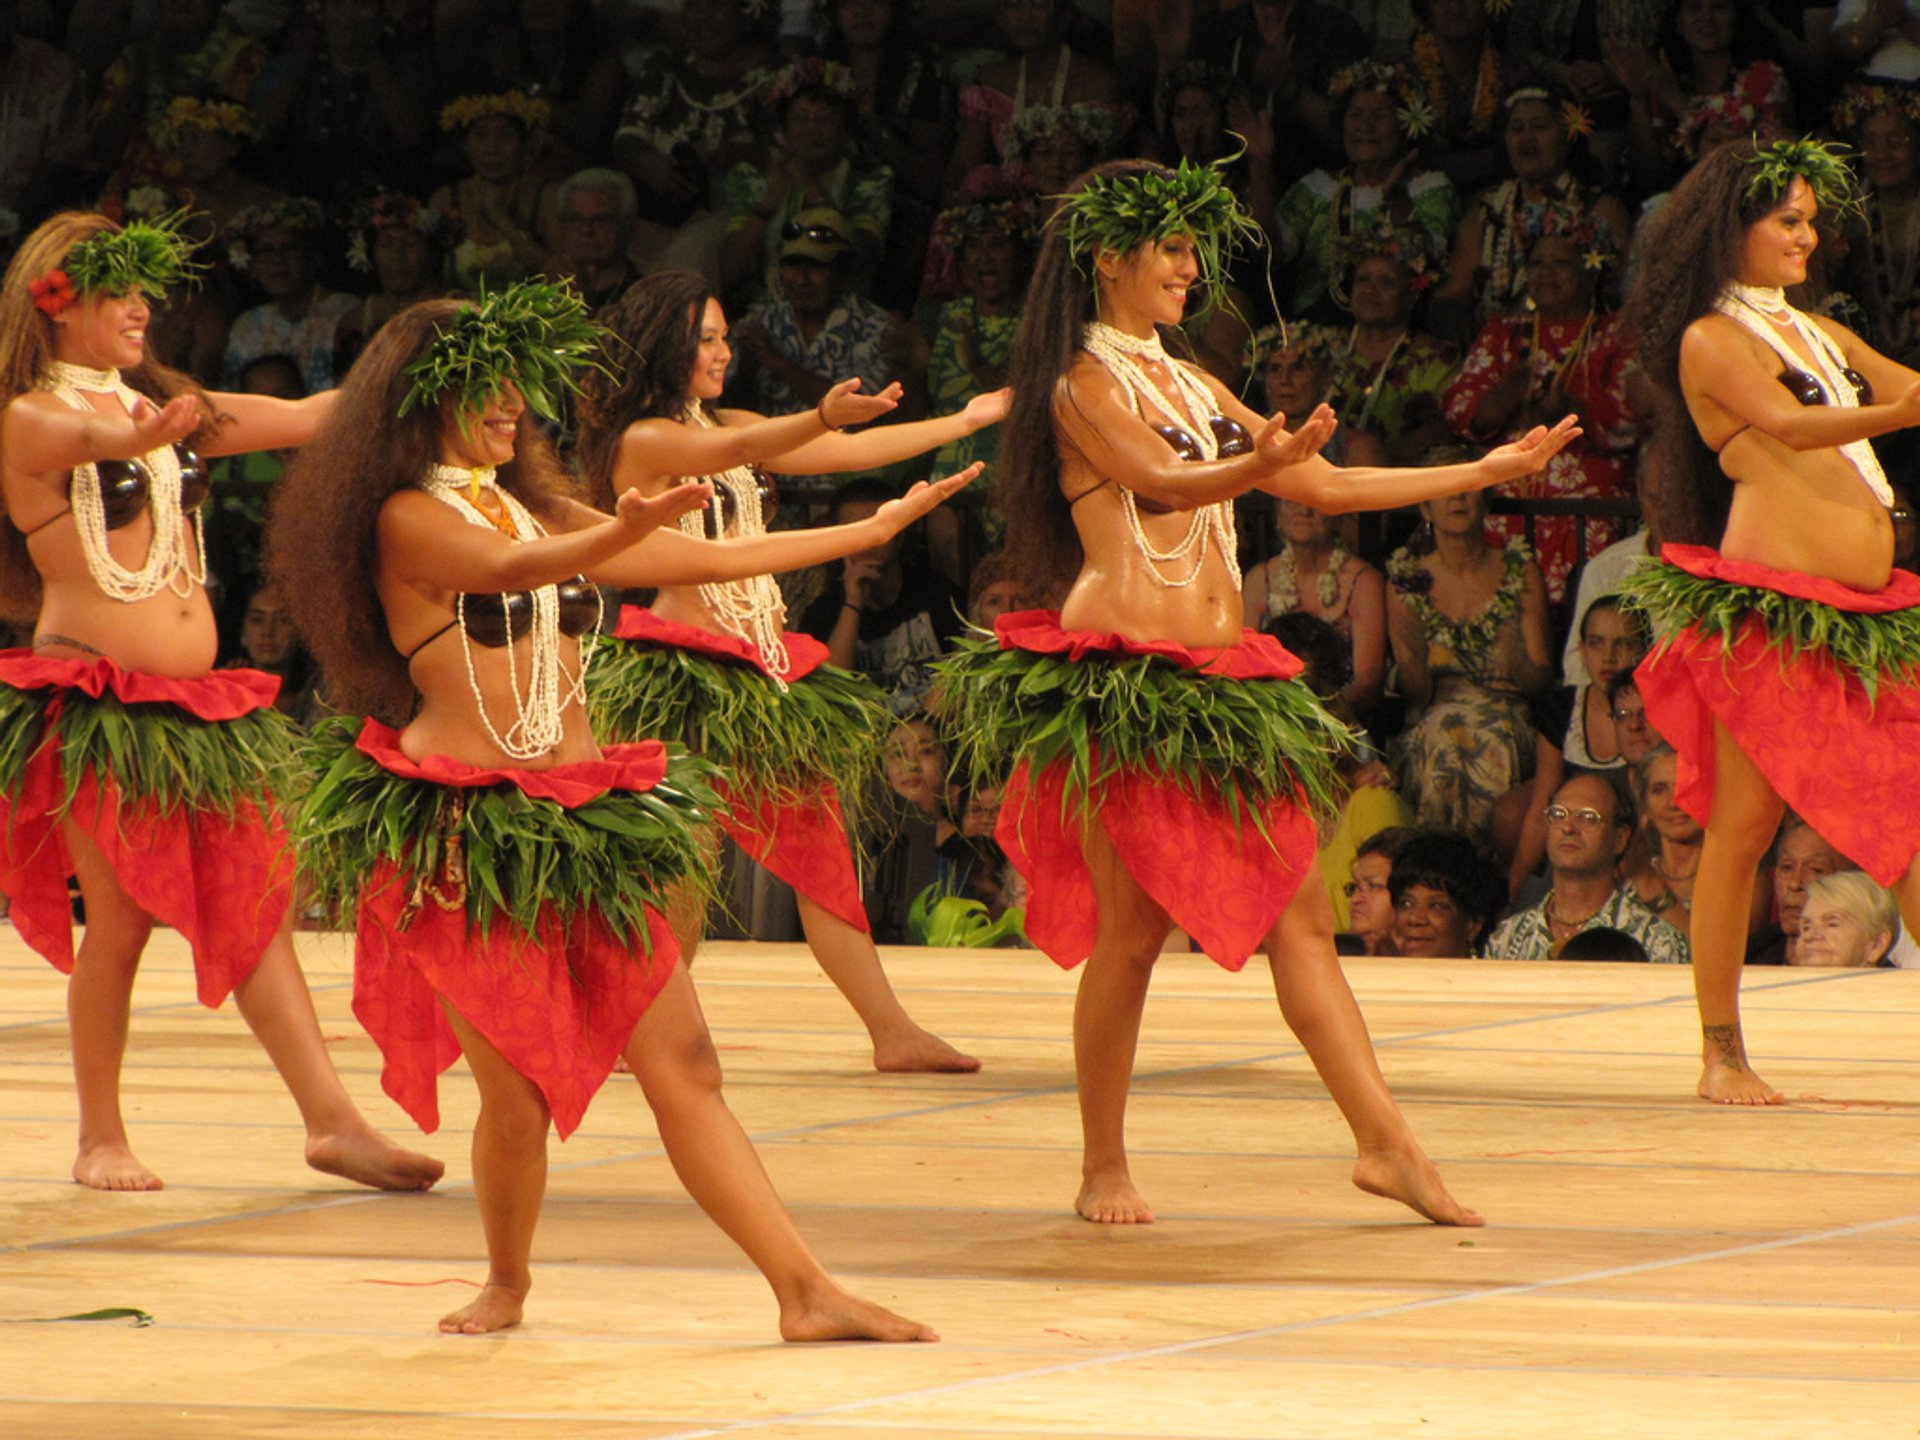 Merrie Monarch Festival in Hawaii 2020 - Best Time